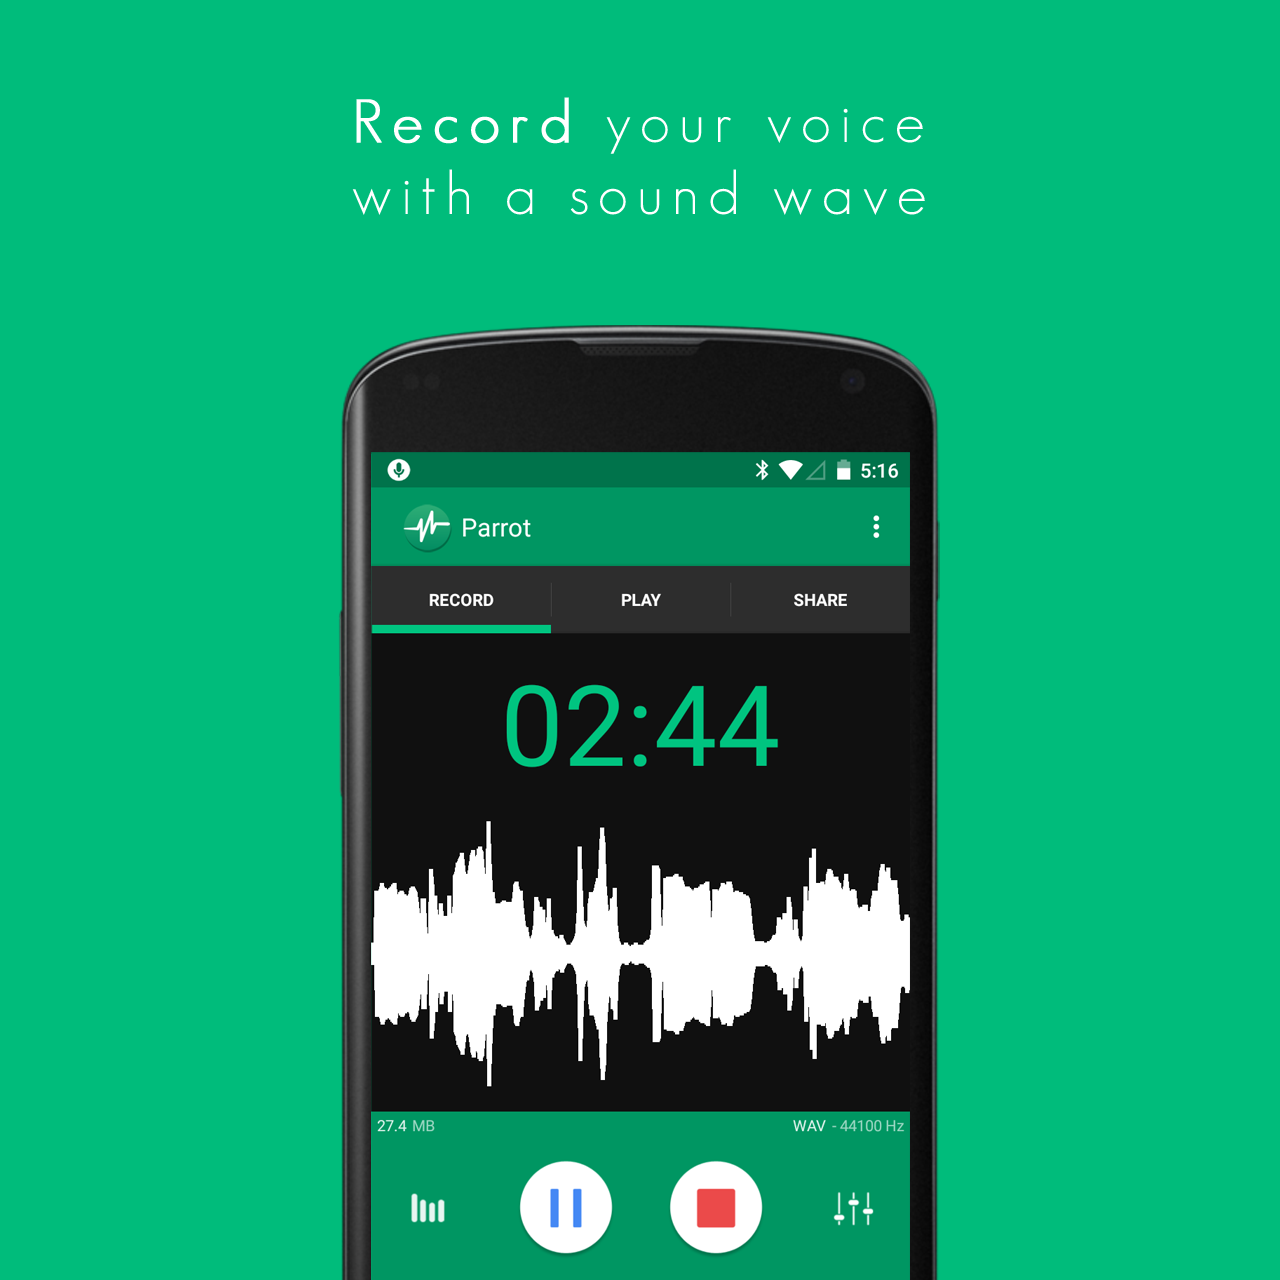 Parrot Voice Recorder for Android and BlackBerry 10